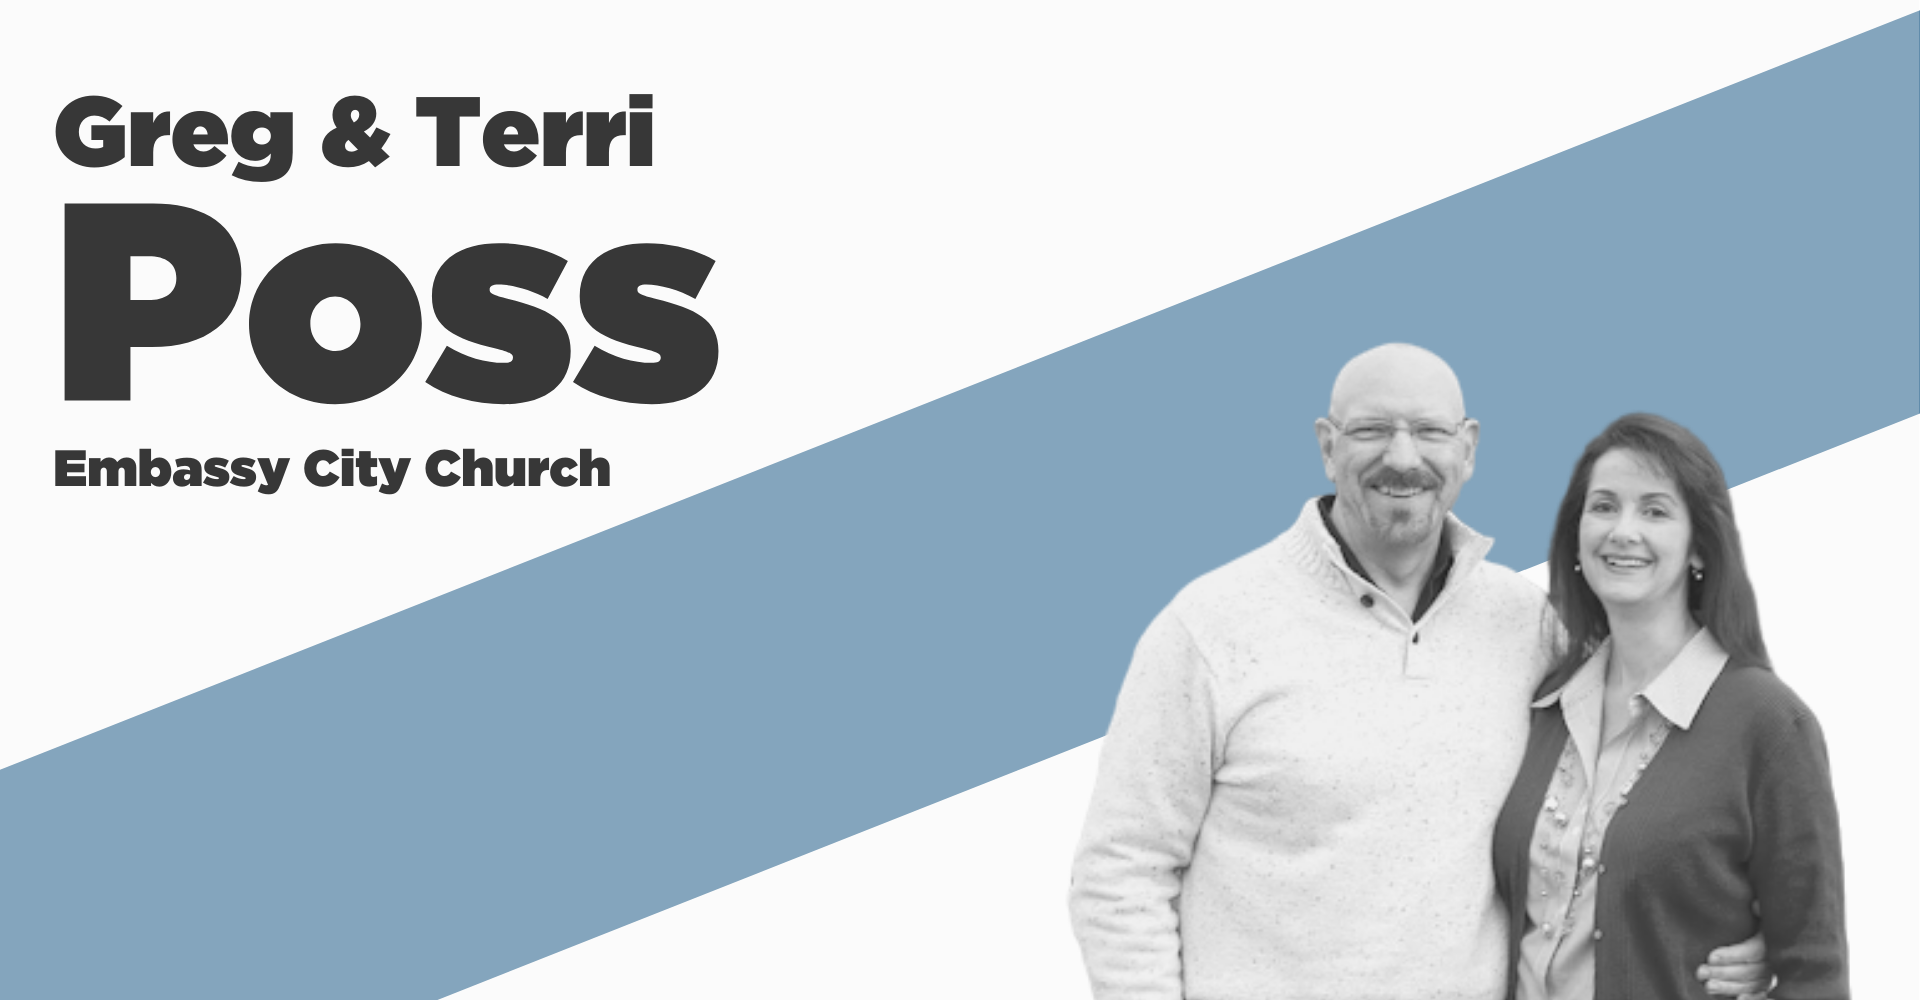 Greg & Terri Poss, Embassy City Church